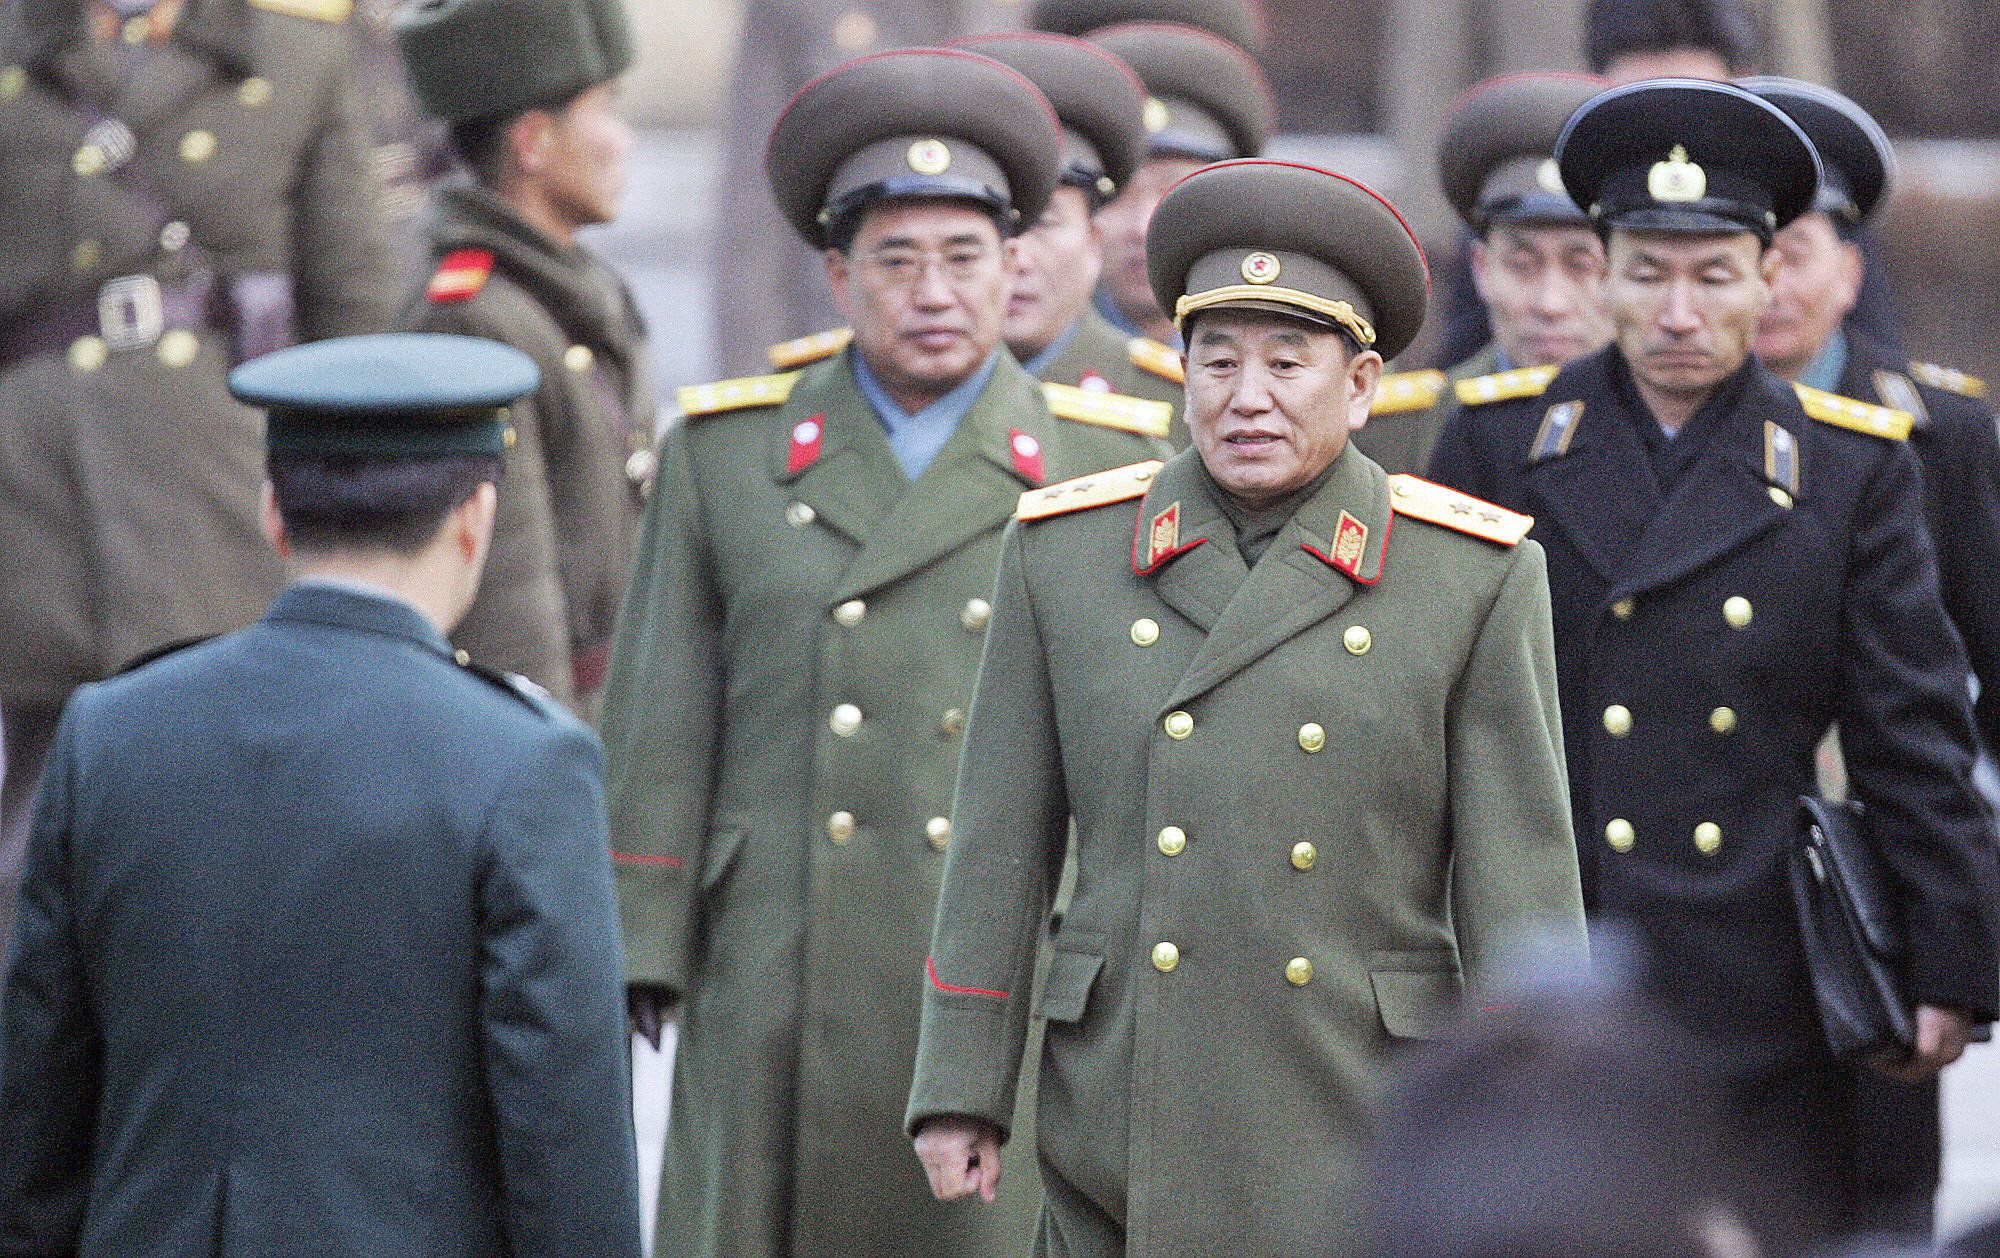 North Korean chief delegate Kim Yong Chol (2nd-R) and other military officers are greeted by South Korean officers after crossing the border line at the south side of the truce village of Panmunjom, in the demilitarized zone (DMZ), separating the two Koreas since 1950-53 Korean War, north of Seoul, 12 December 2007.    AFP PHOTO / POOL (Photo credit should read LEE JIN-MAN/AFP/Getty Images)